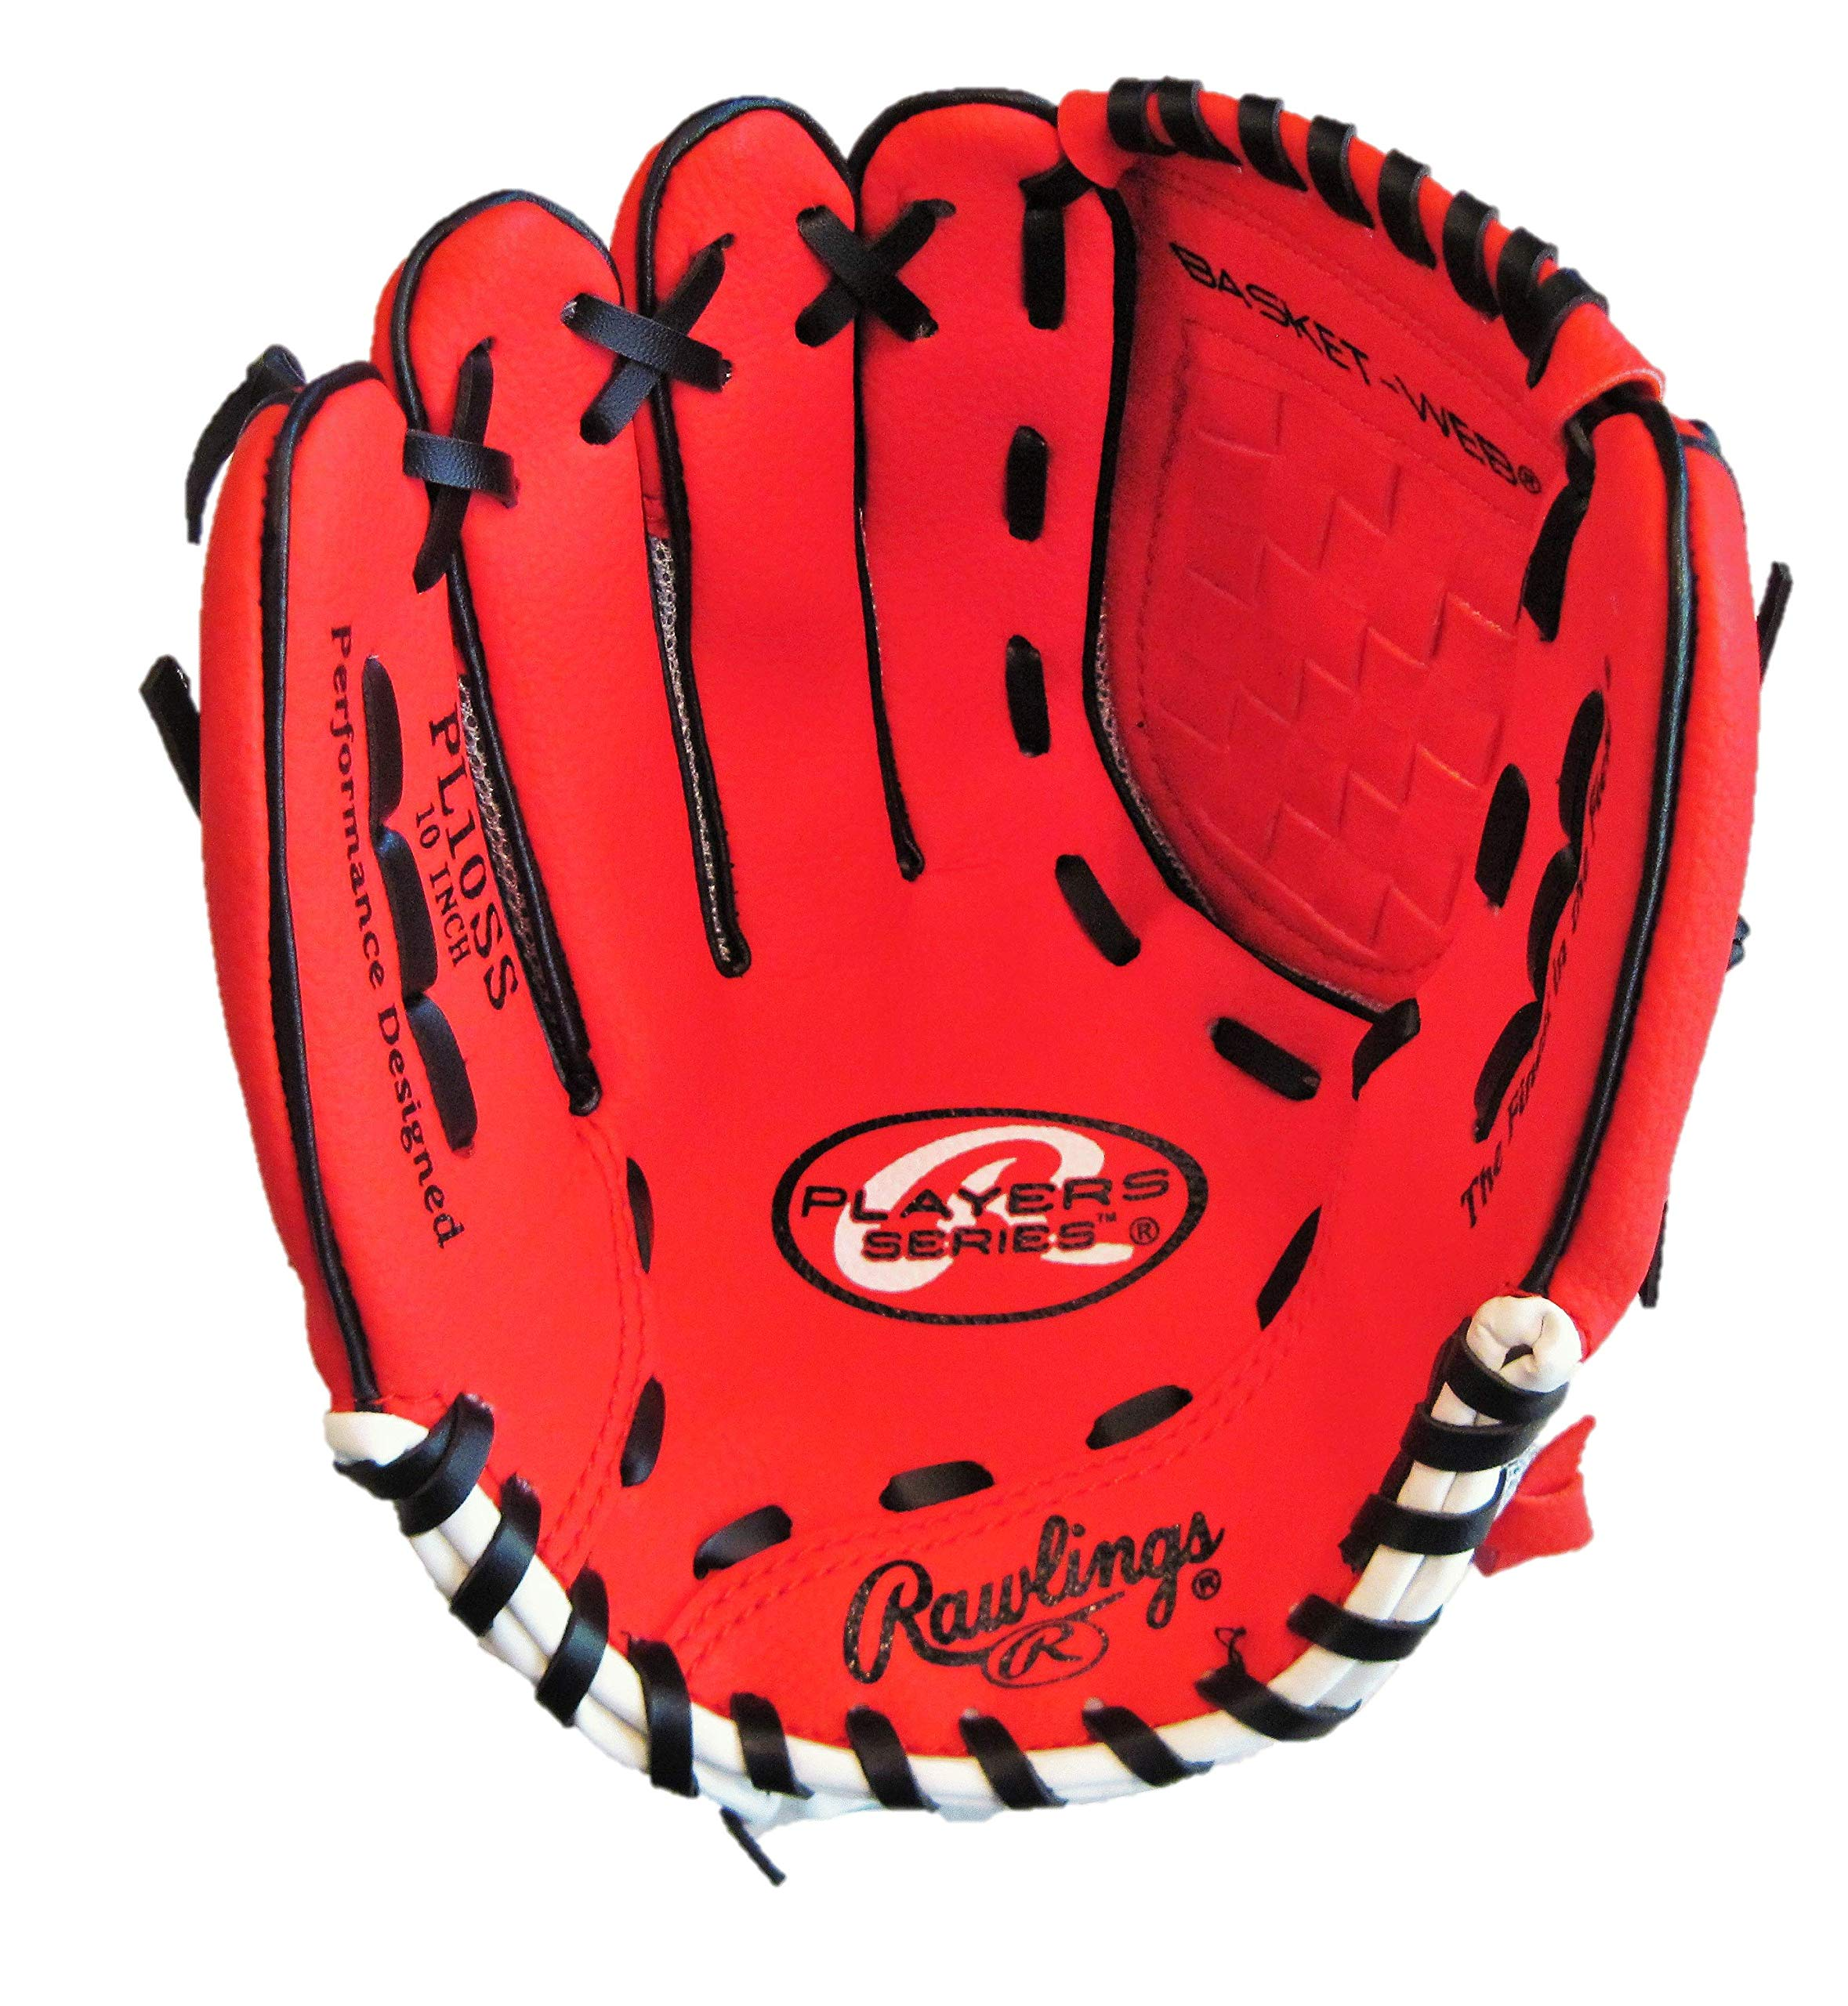 Rawlings Lefty Baseball Glove RED Pro 10 inches PL10SS Professional Tee Ball Pitcher Hand Players Series Leather Pocket Mitt Red Infield Left Hand Throw Catchers Gloves by Rawlings Lefty PL10SS Players Series